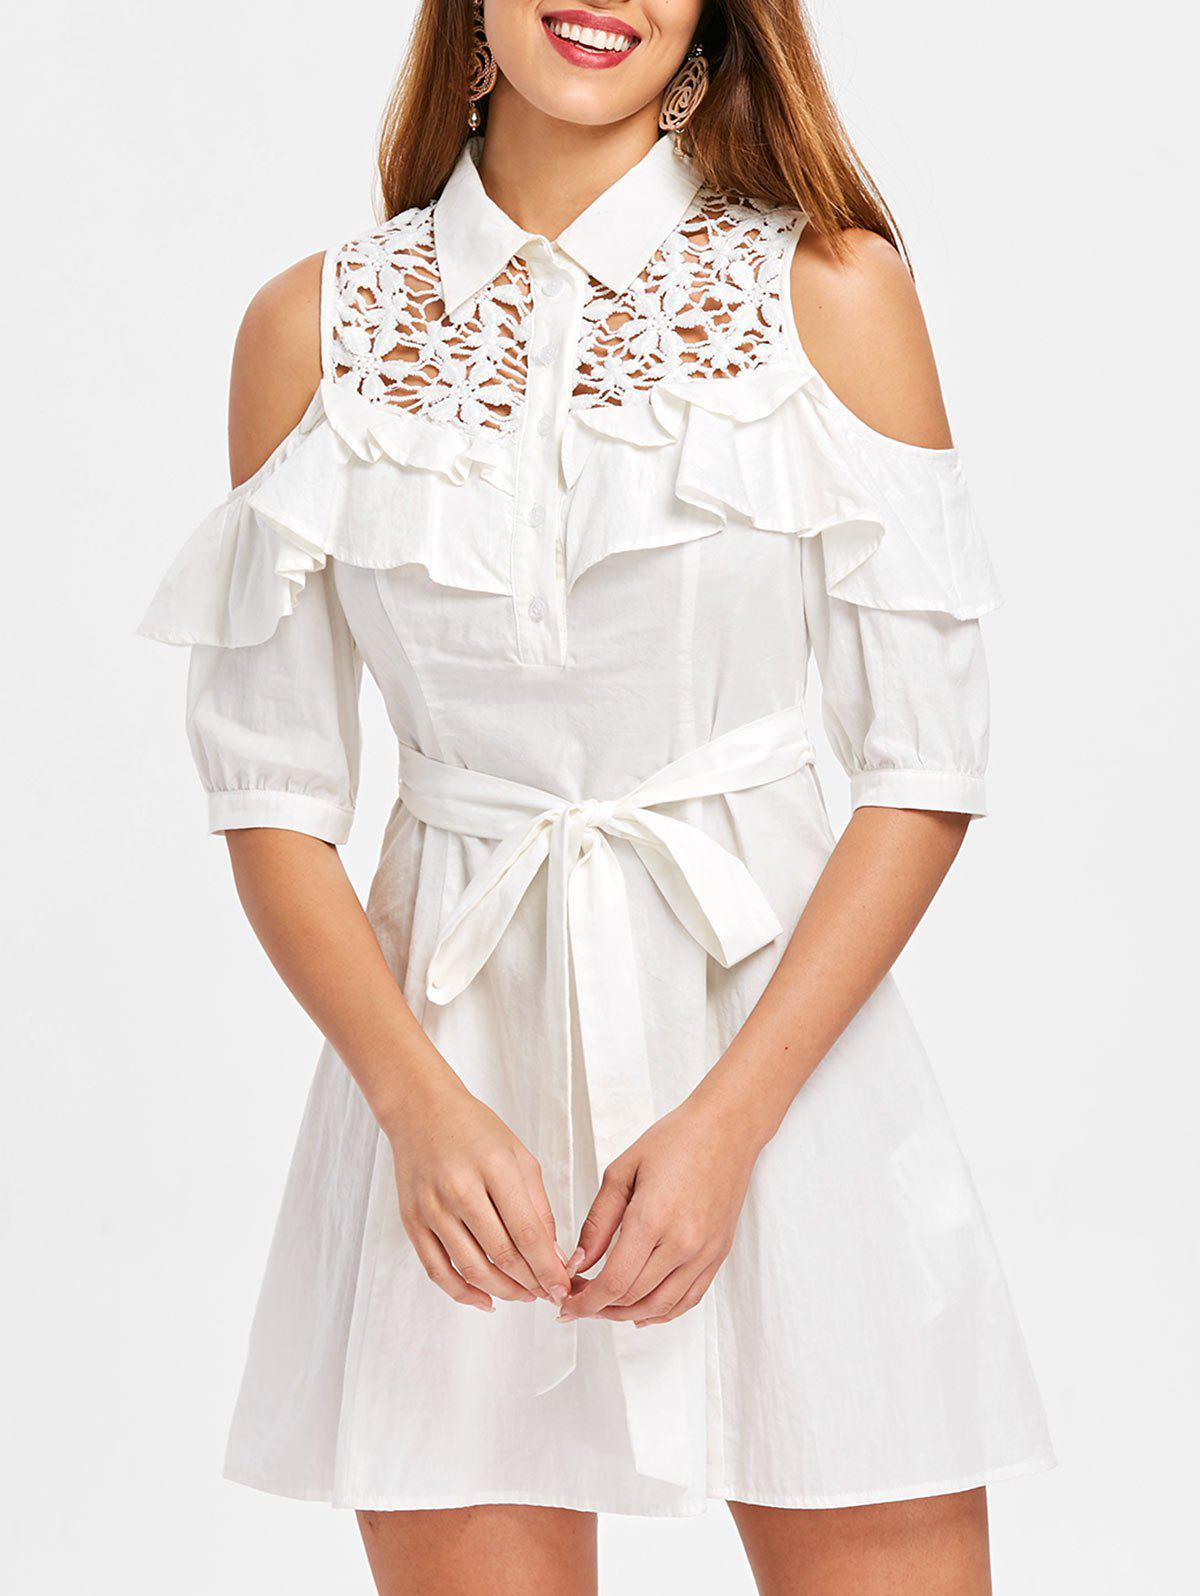 Buy High Waisted Half Sleeve Shirtdress